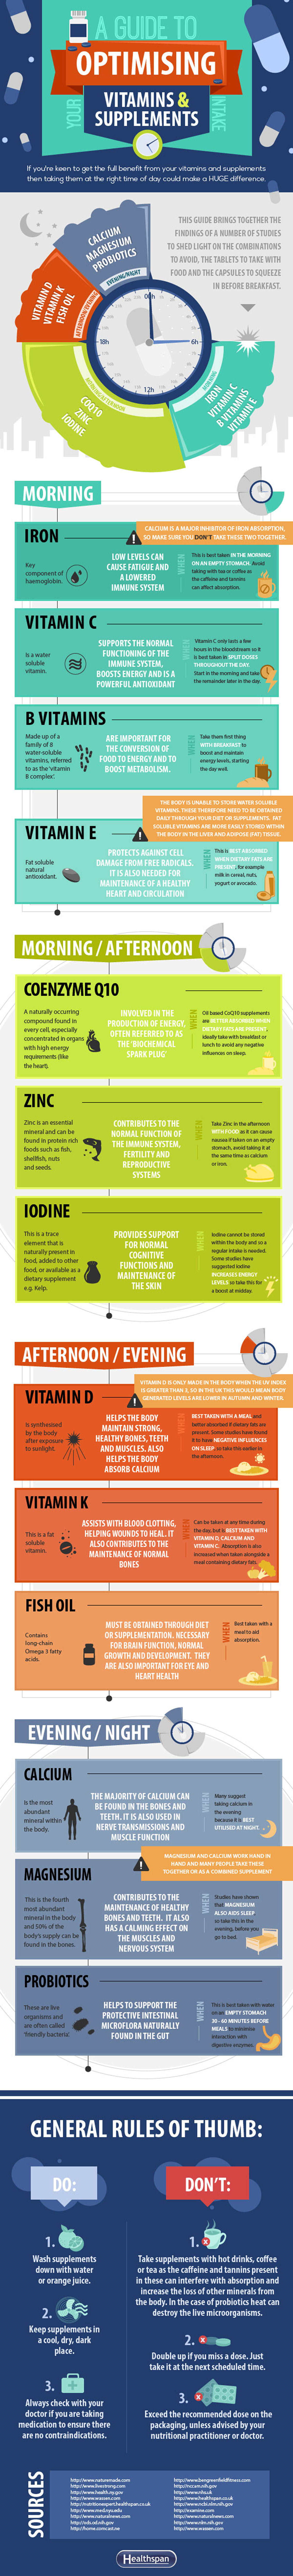 A Guide to Optimising Vitamins and Supplements Infographic